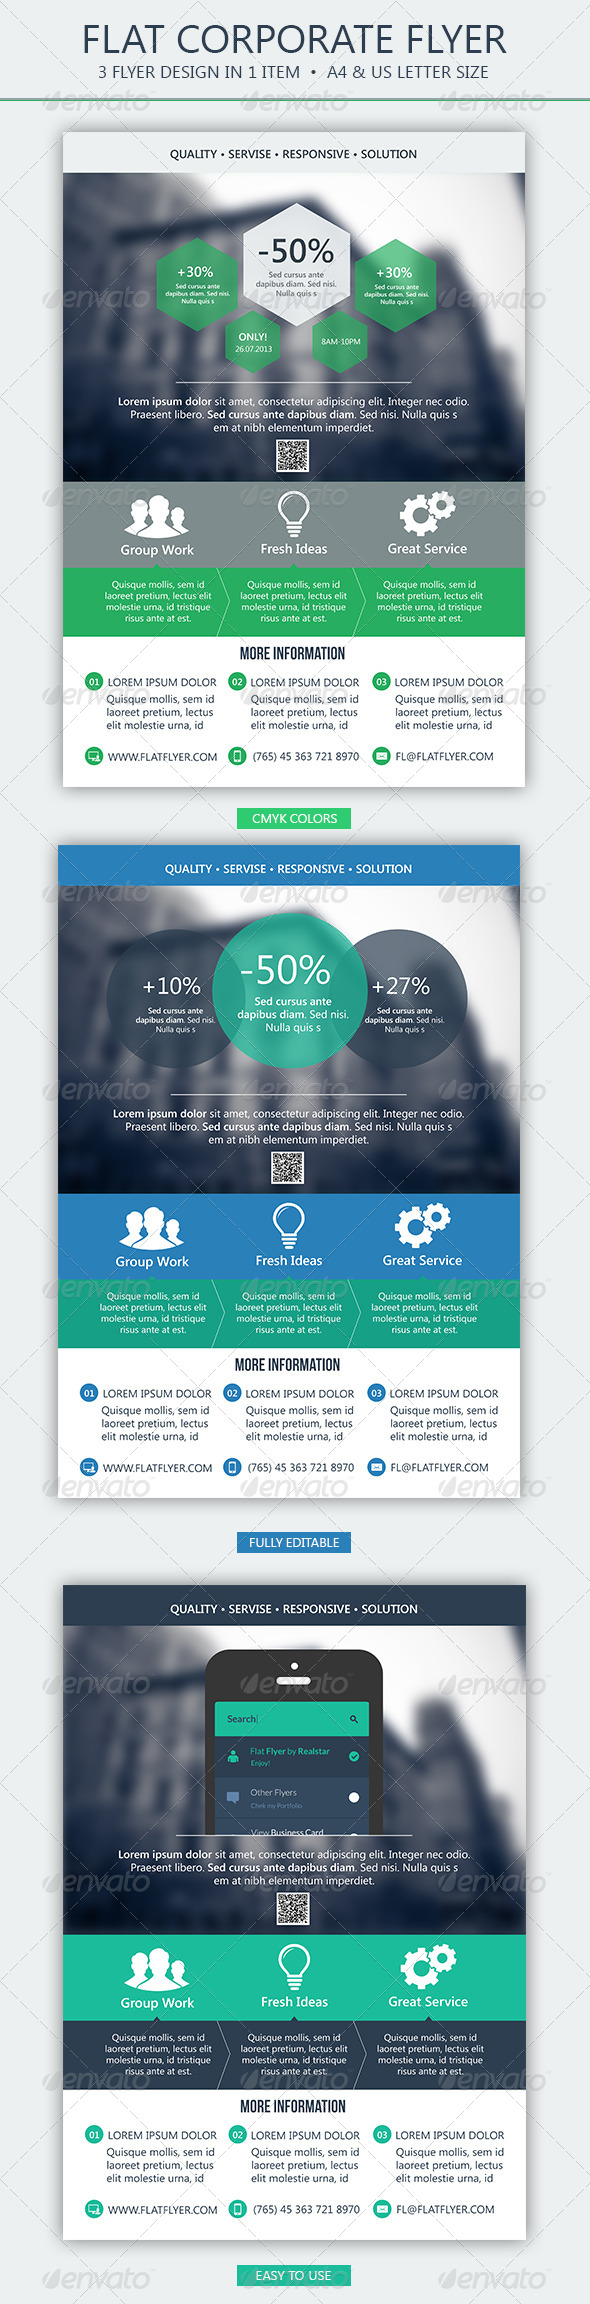 GraphicRiver Flat Corporate Flyer 4837084